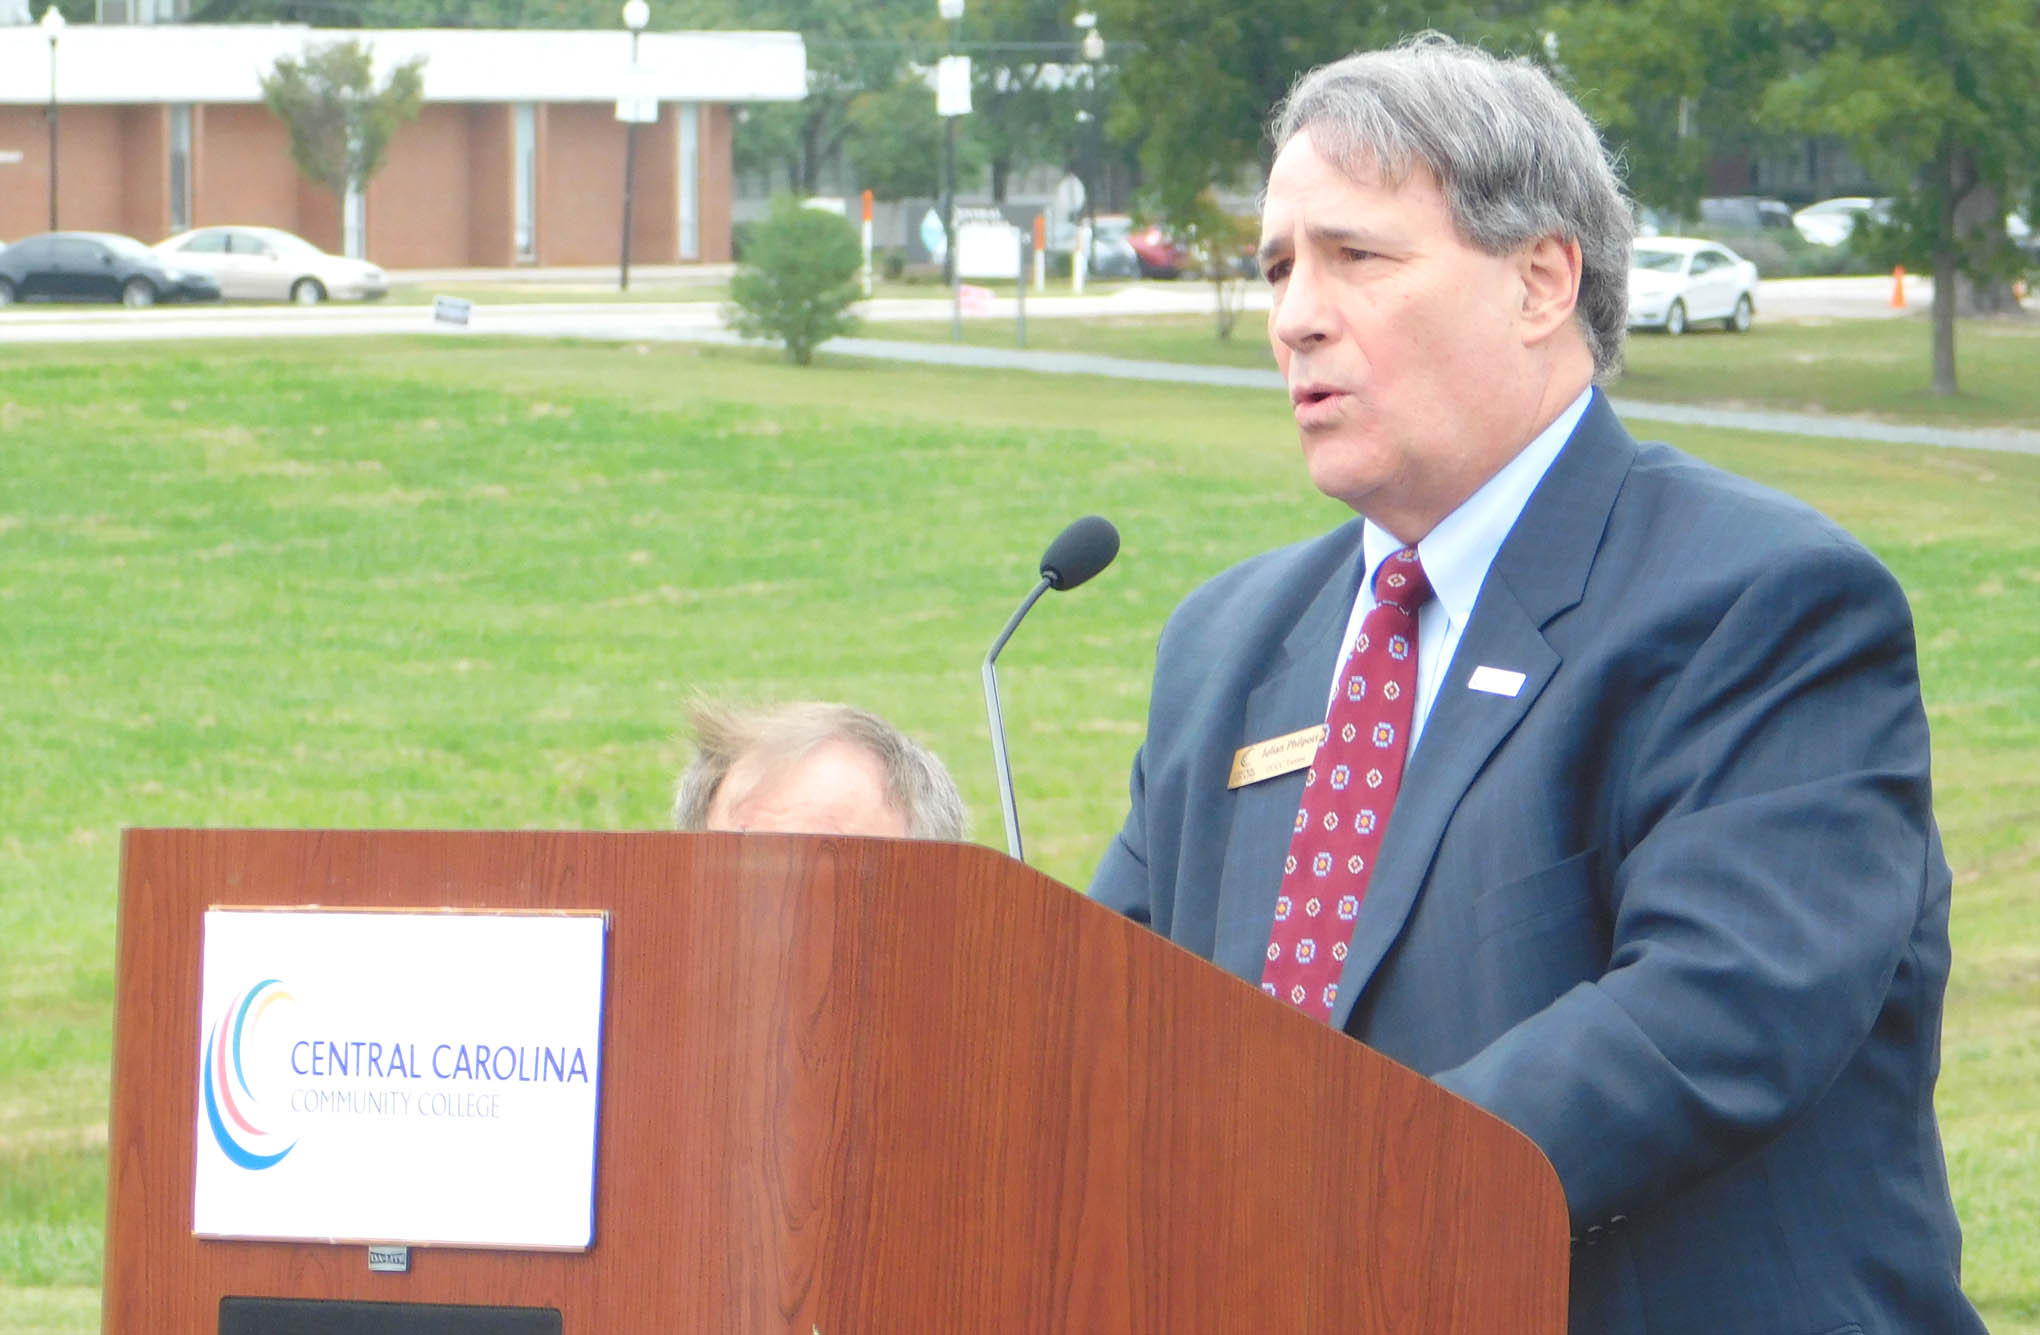 Click to enlarge,  Julian Philpott, Chairman of the Central Carolina Community College Board of Trustees, told attendees at the college's groundbreaking ceremony on Oct. 6, 'We hope you are proud of your community college as we continue CCCC's commitment to excellence.'